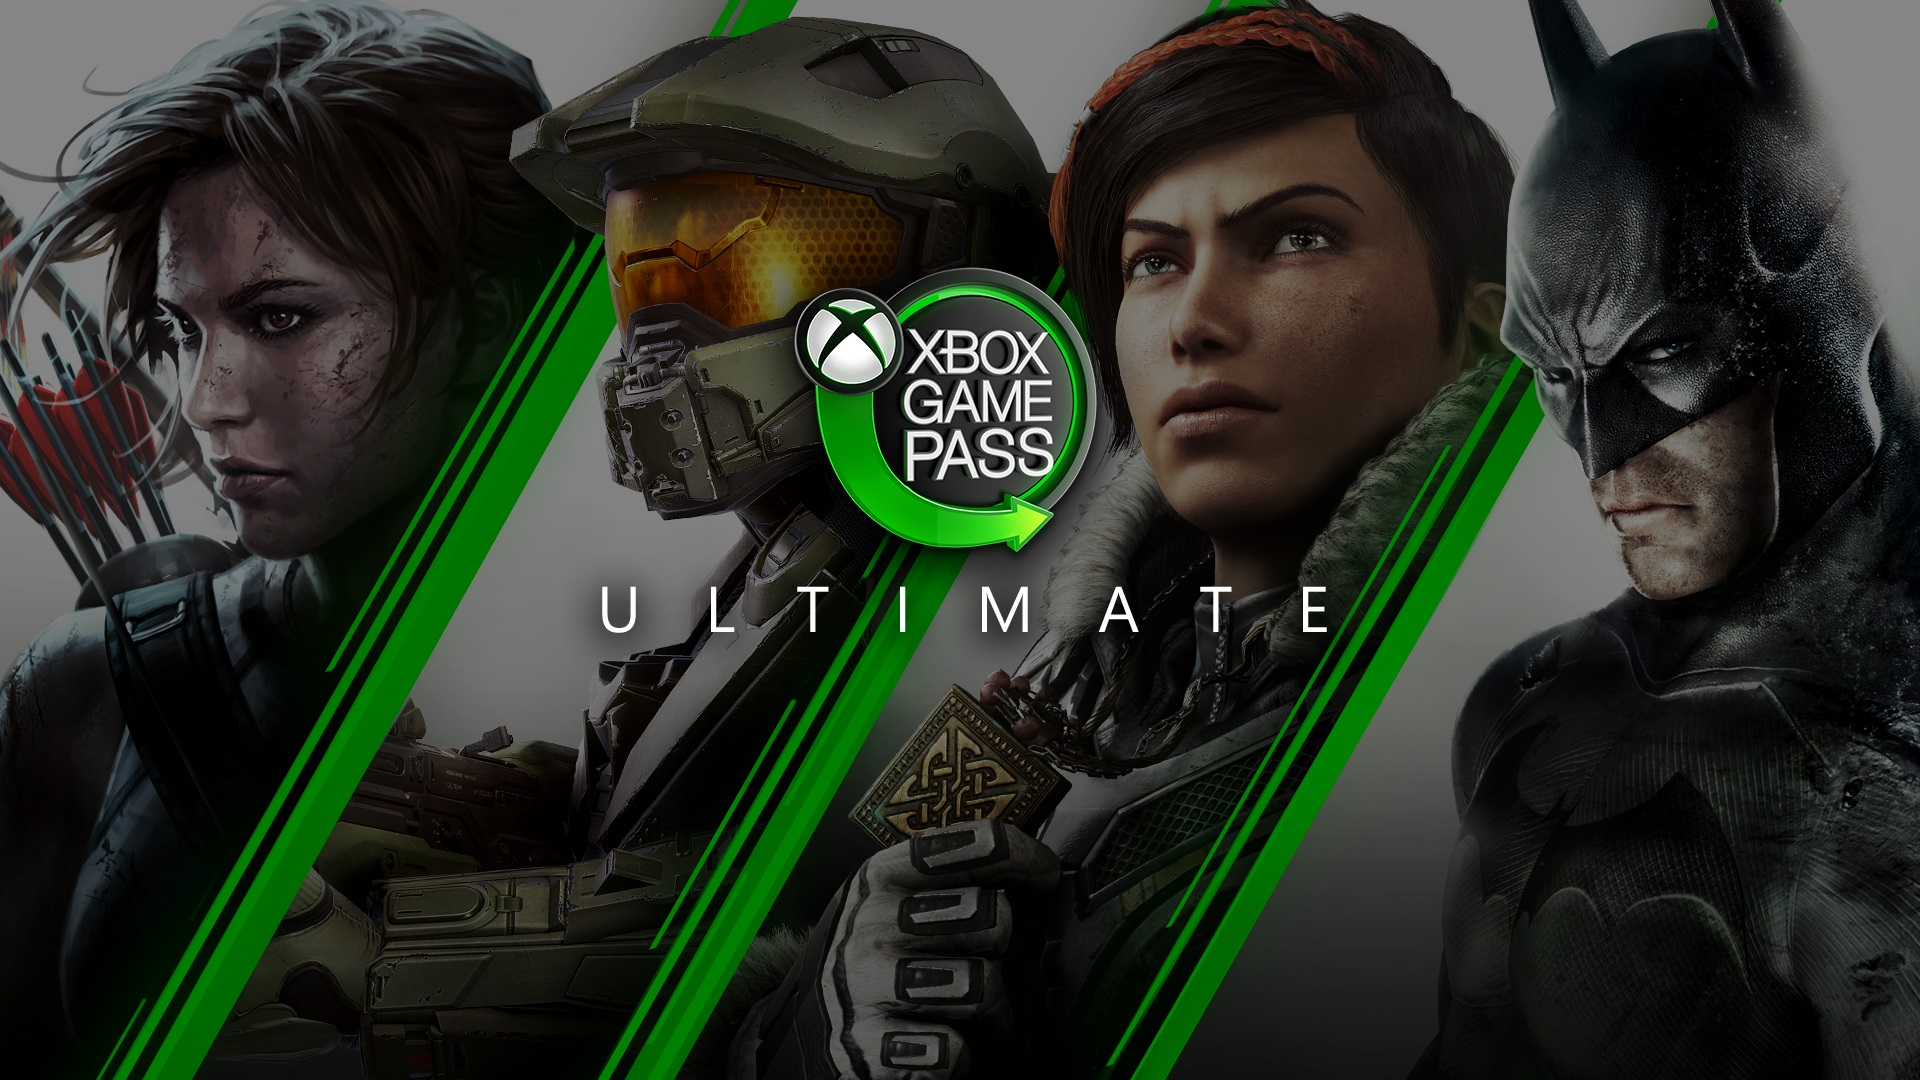 xbox game pass ultimate, PC, Xbox One, Live Gold, July Games